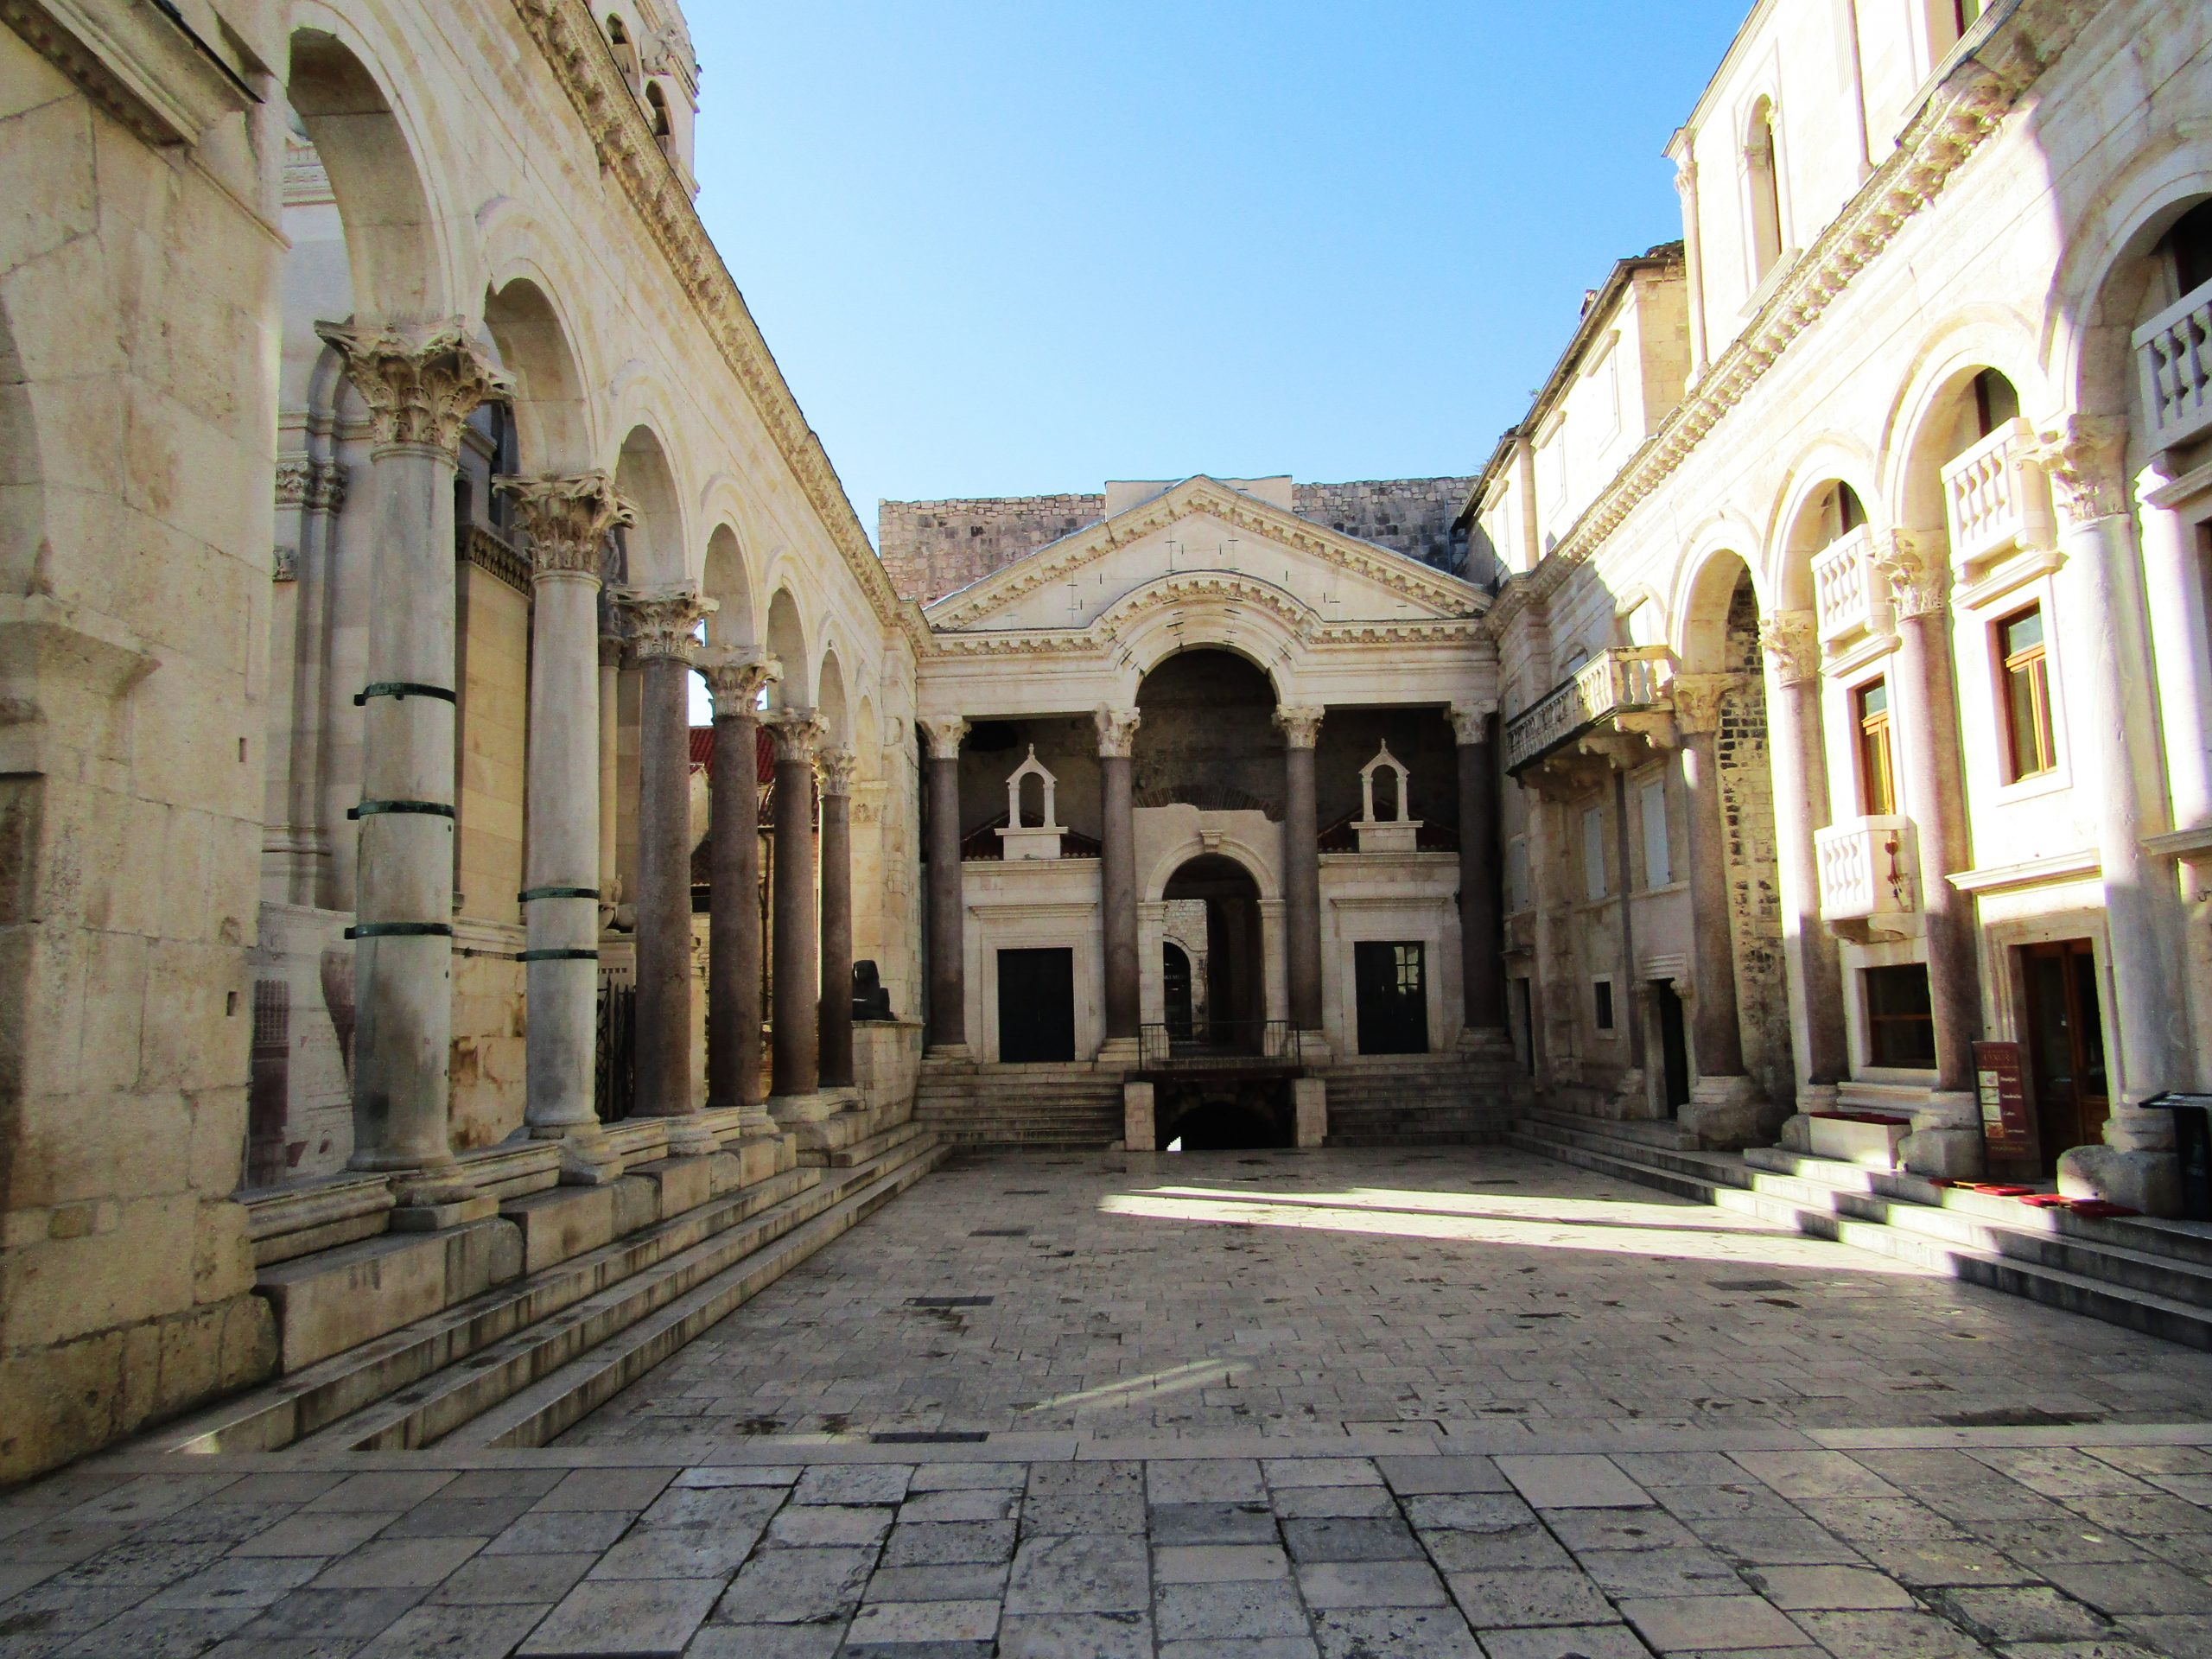 Peristyle Square is located in the center of Diocletian's Palace